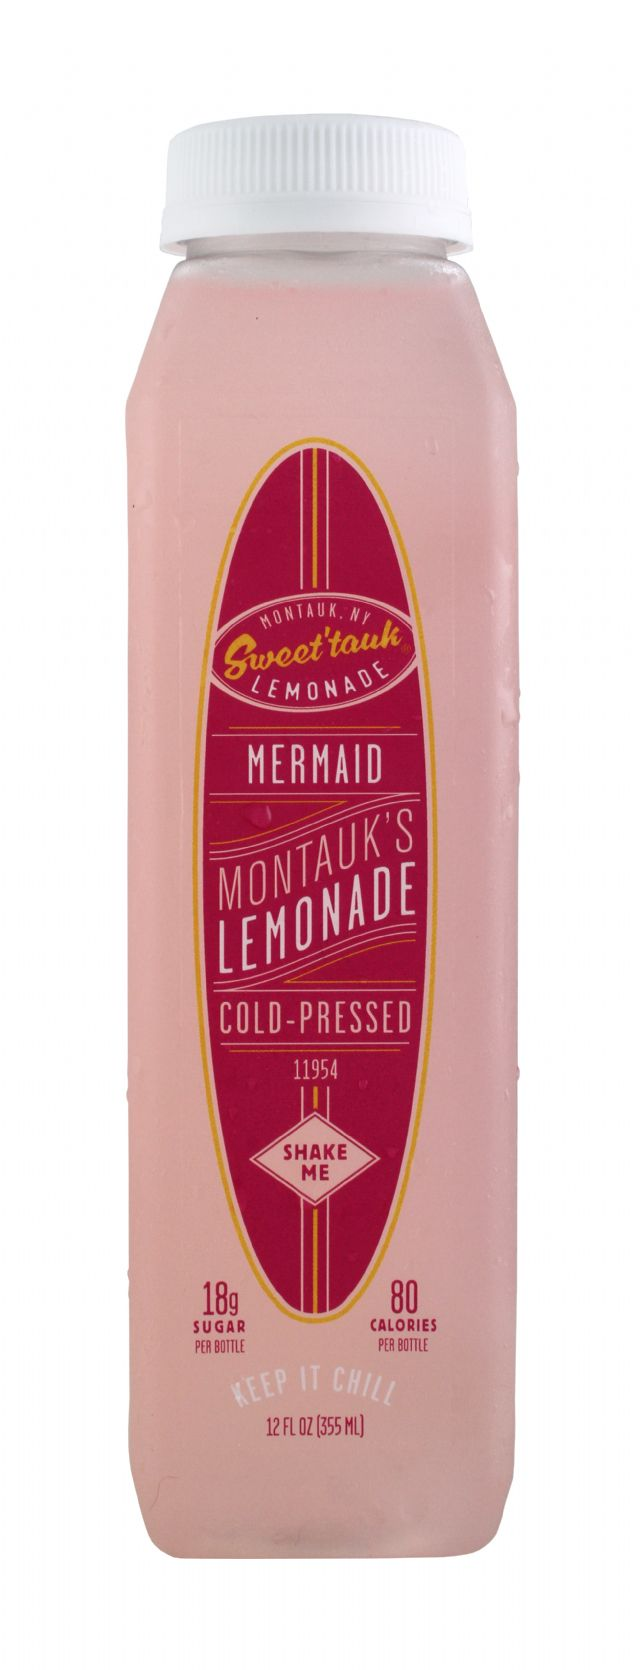 Sweet'tauk Lemonade: SweetTaulk Mermaid Front